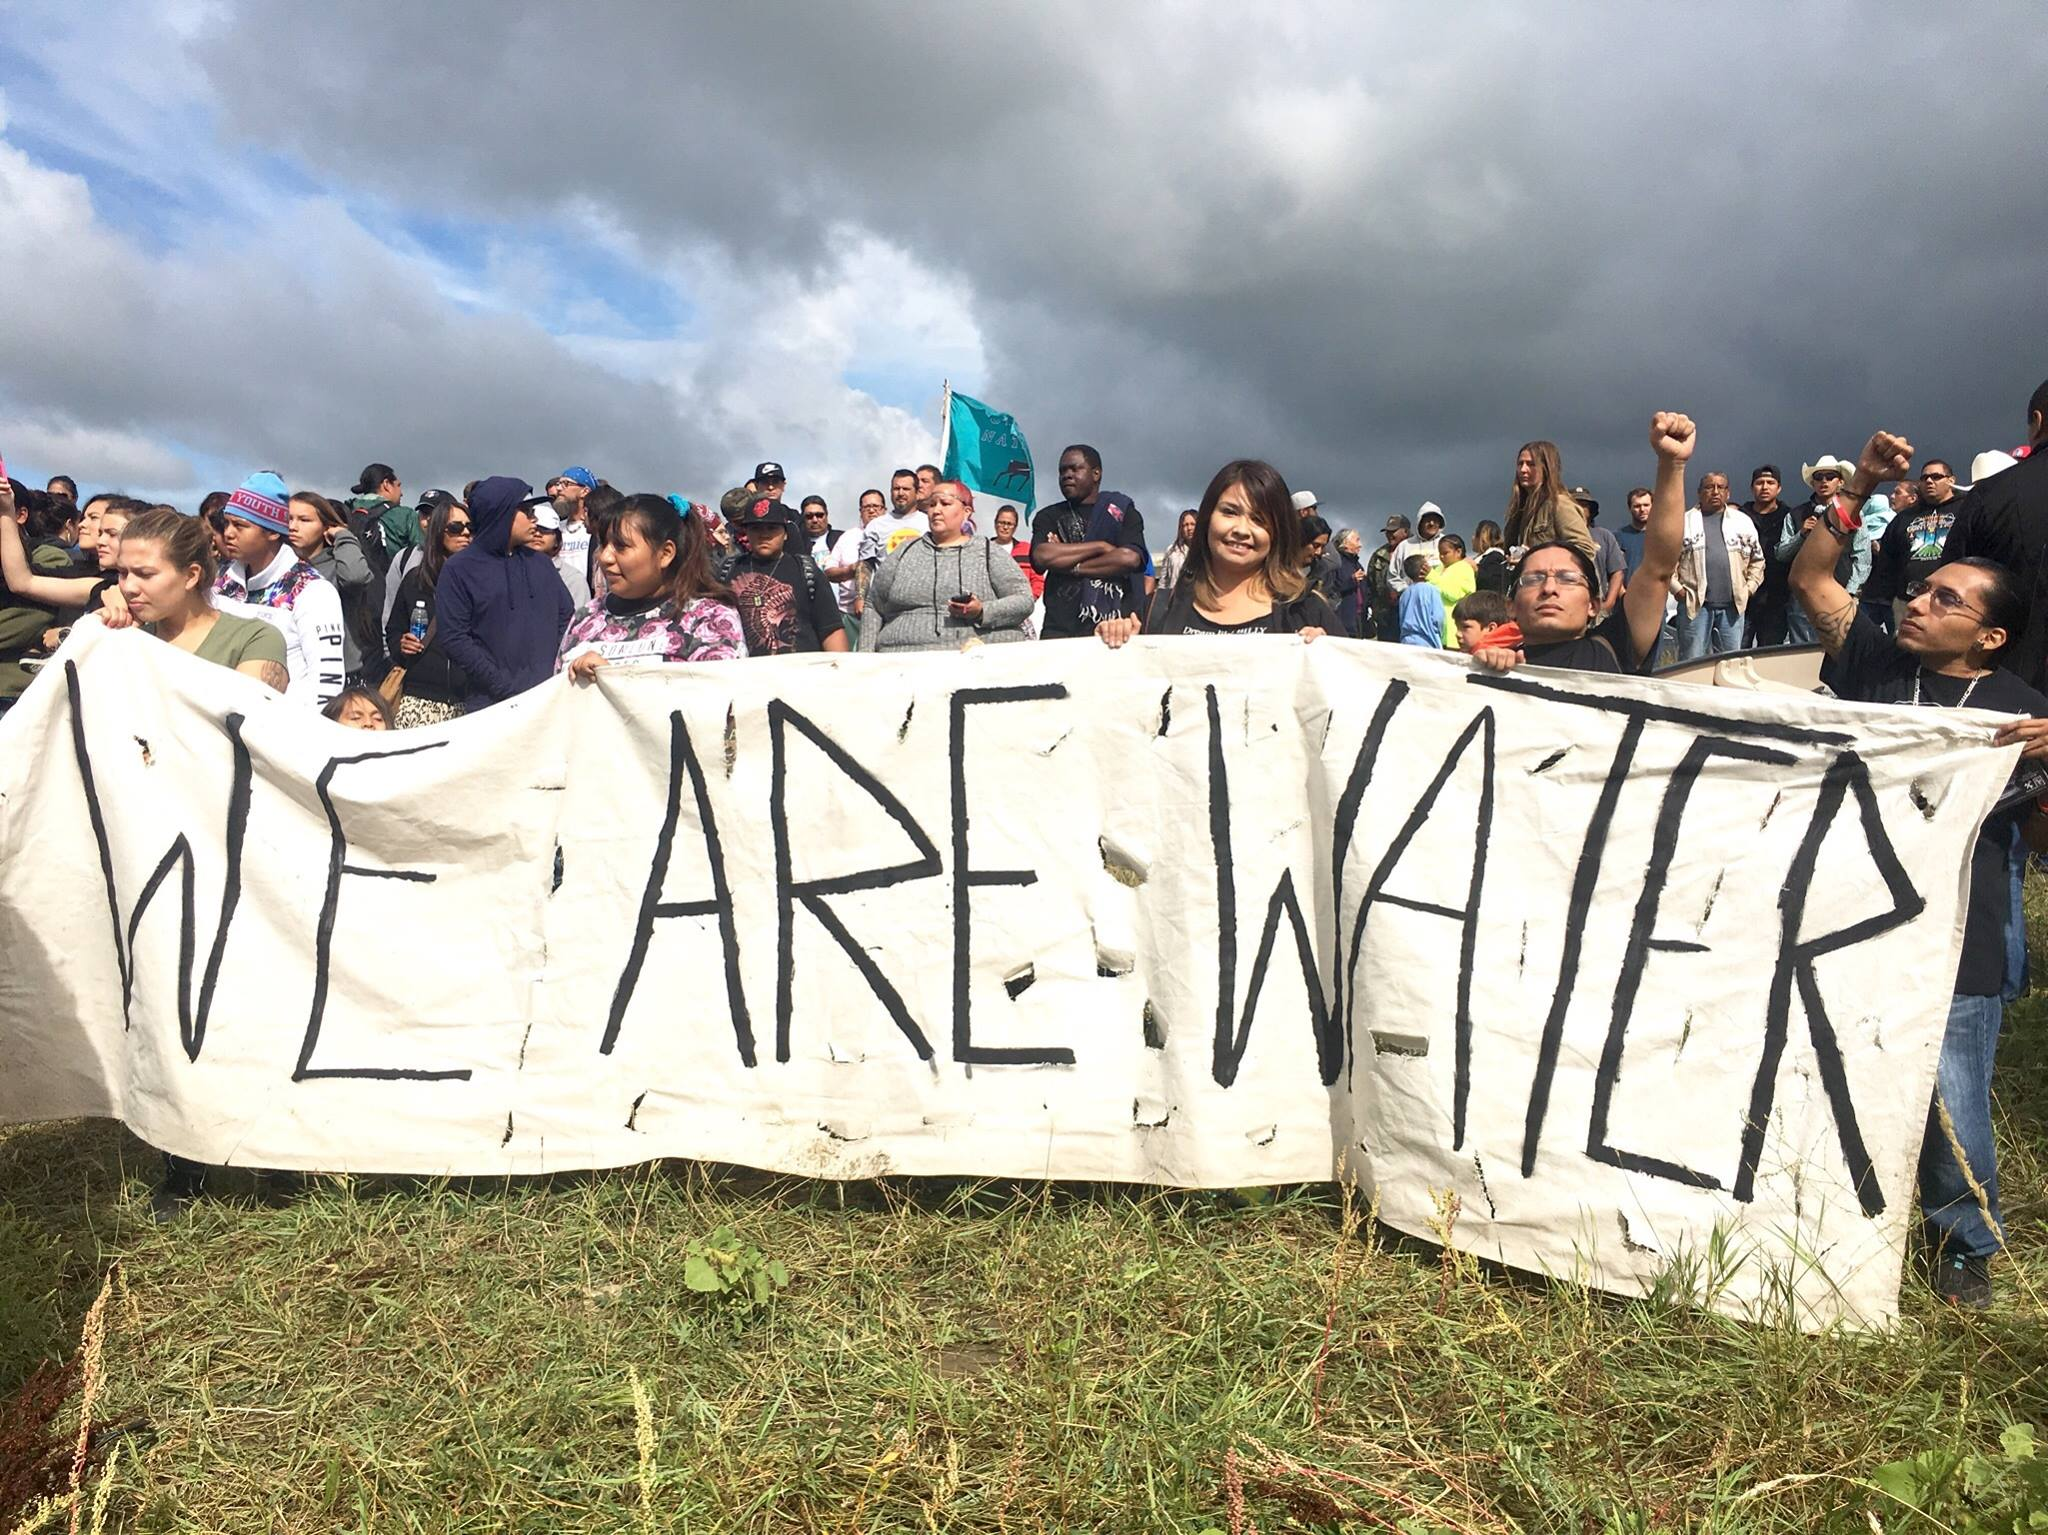 Water protectors at the Sacred Stone camp resisting the Dakota Access oil pipeline (source: Indianz.com)